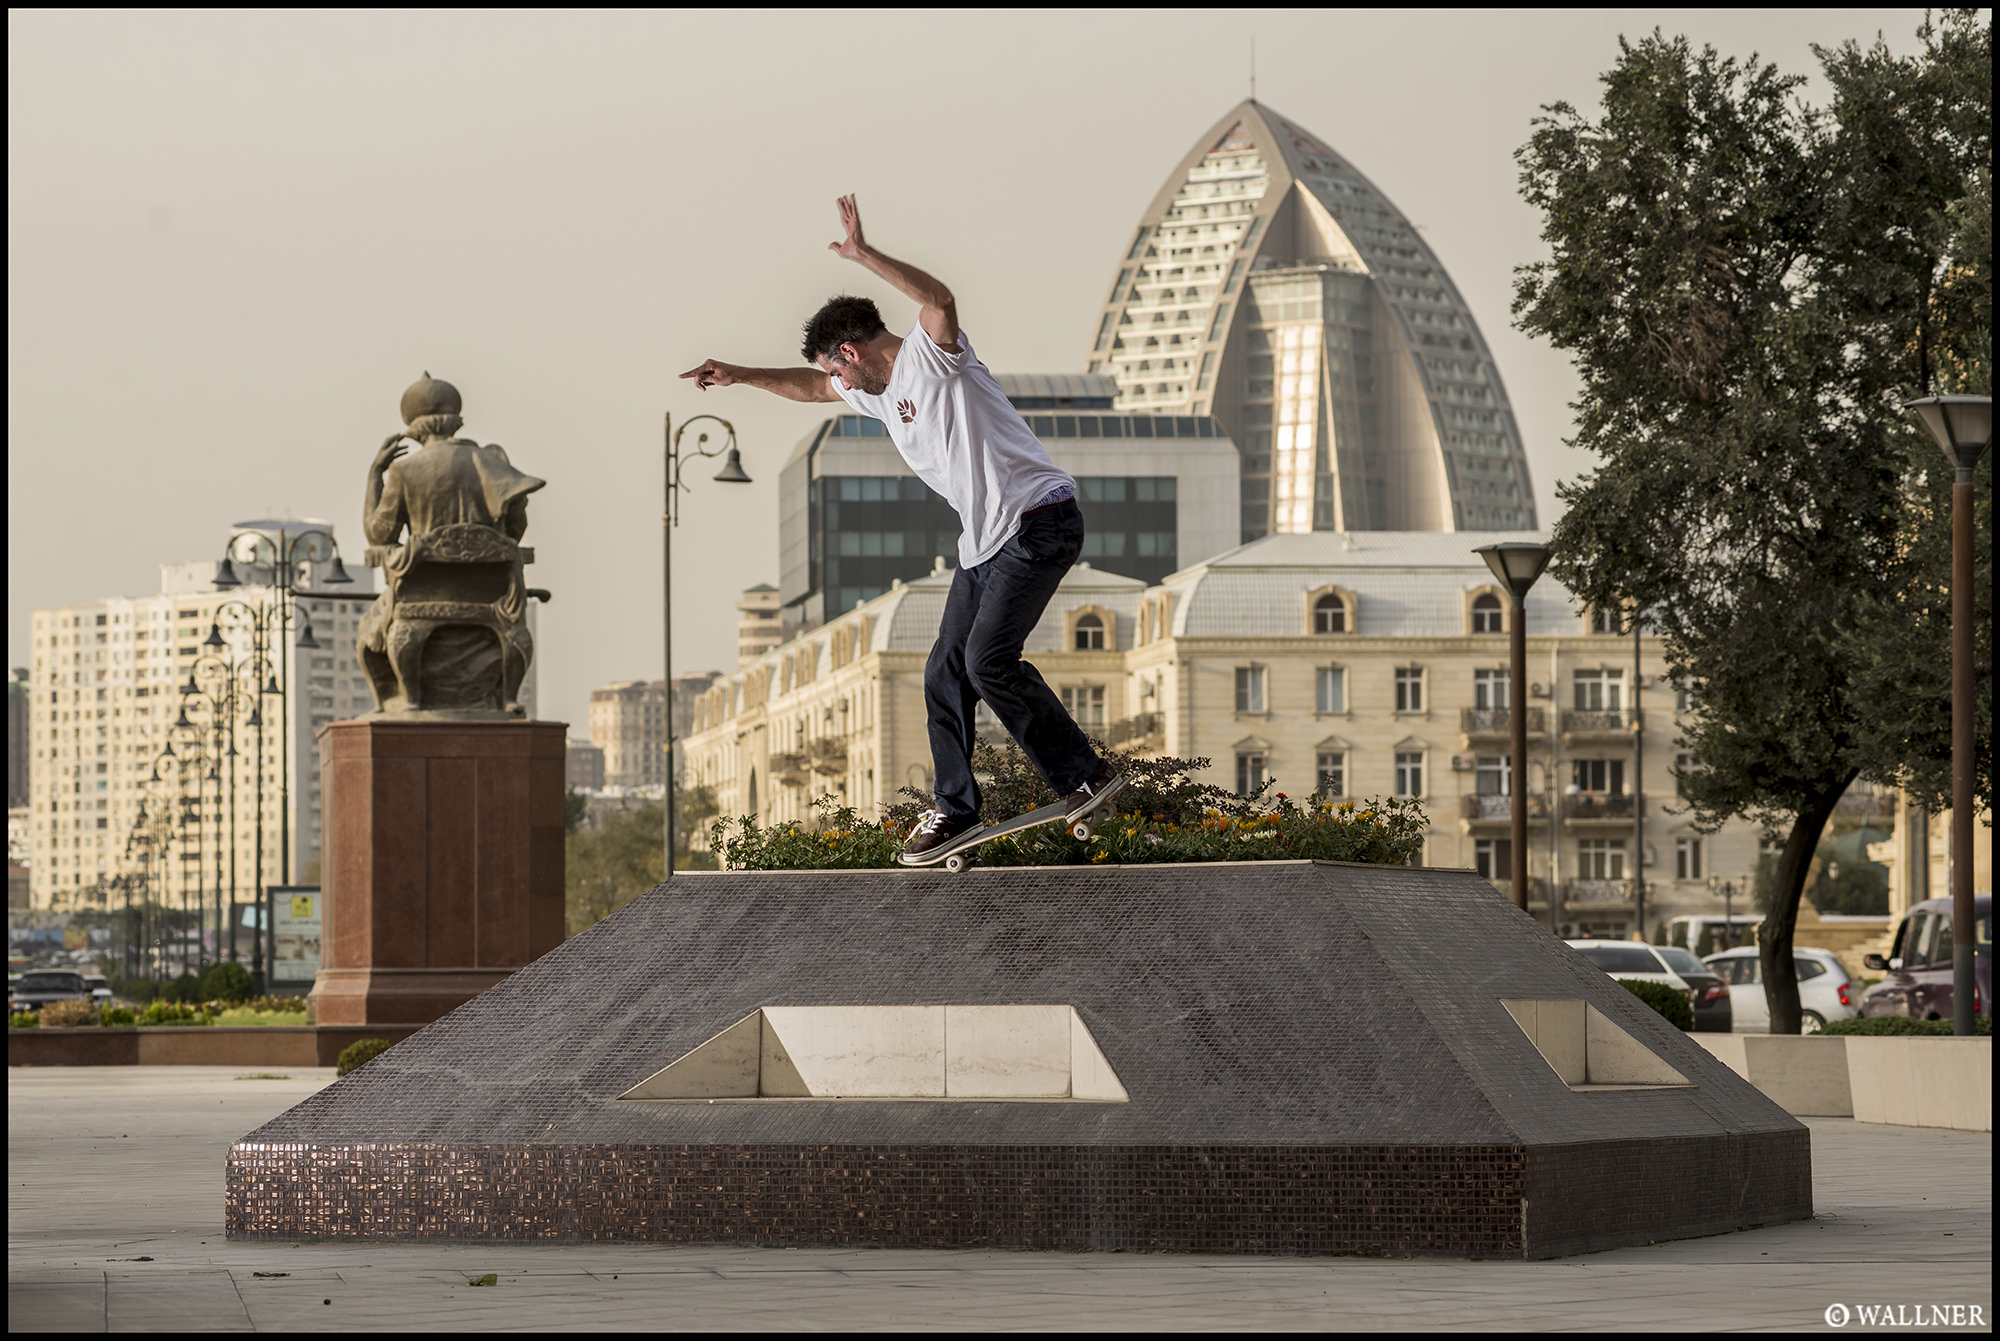 Digital Patrik Wallner Baku Kenny Bs Nosegrind Triangle LOWQ 2000P